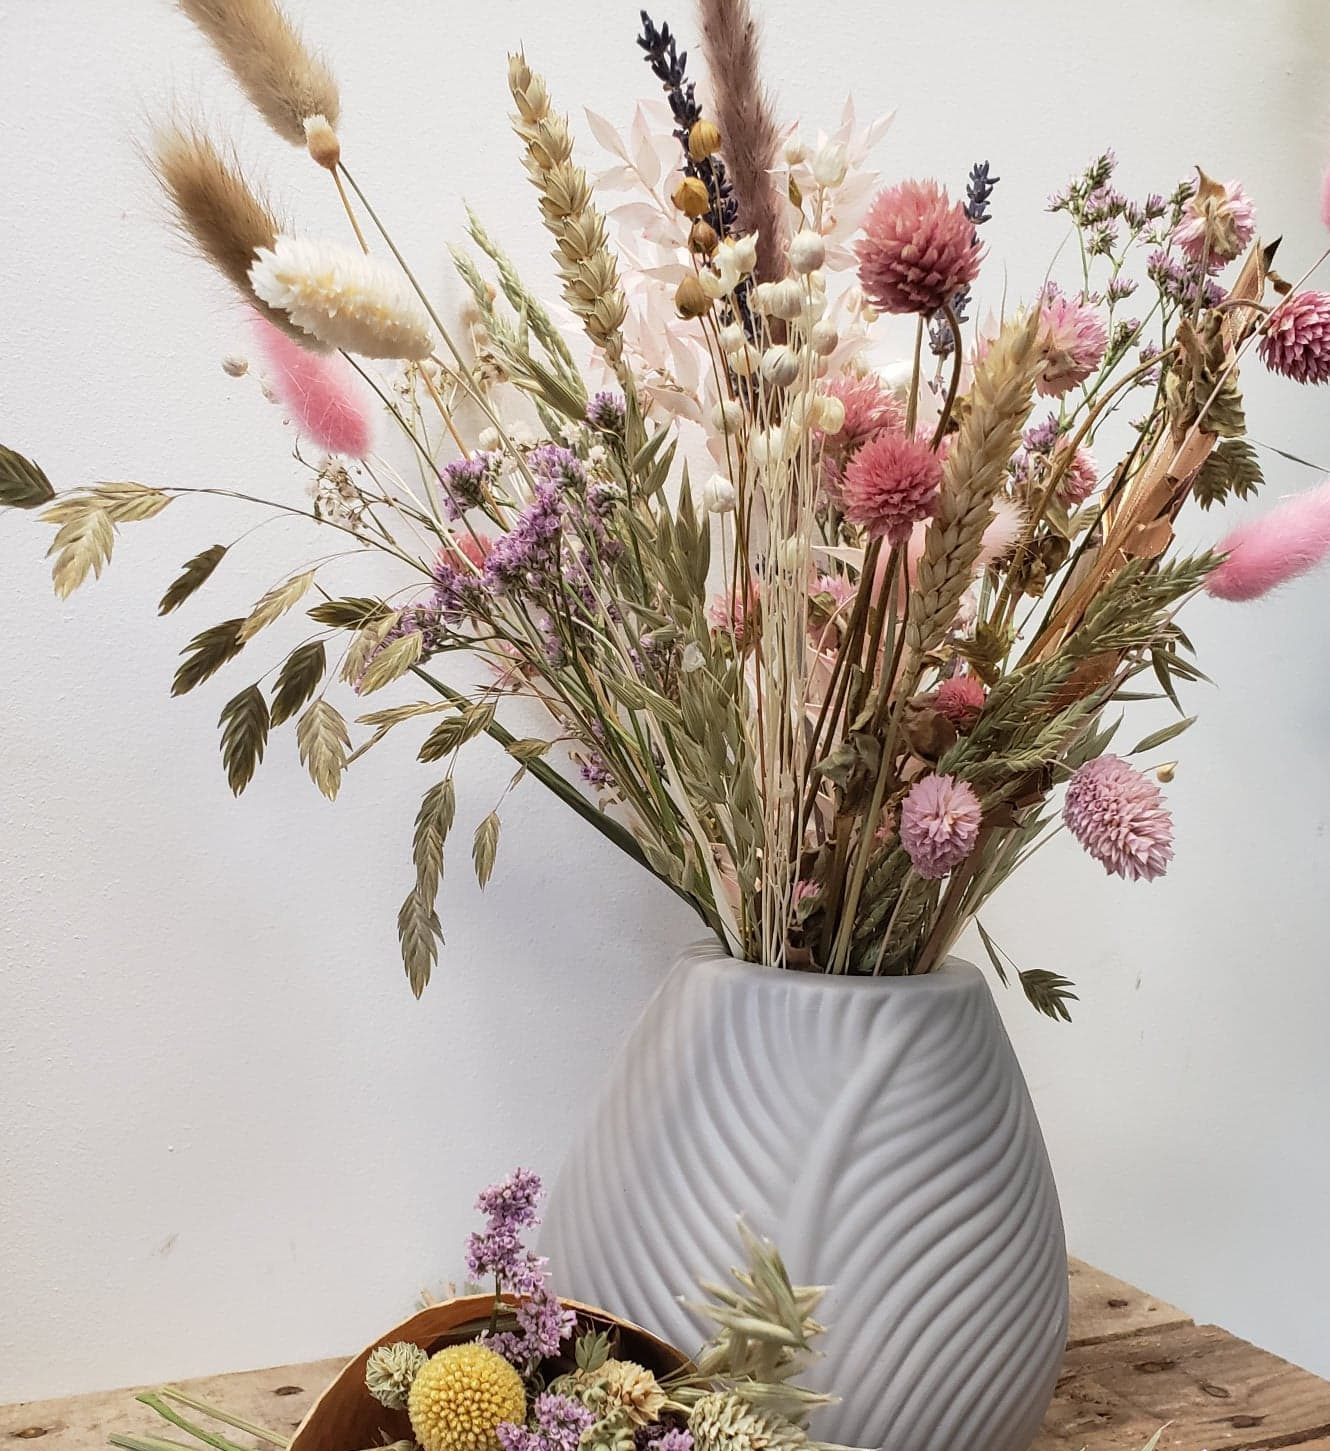 dried flowers-bunny tails-pampas grass-flower gifts-flowers by post